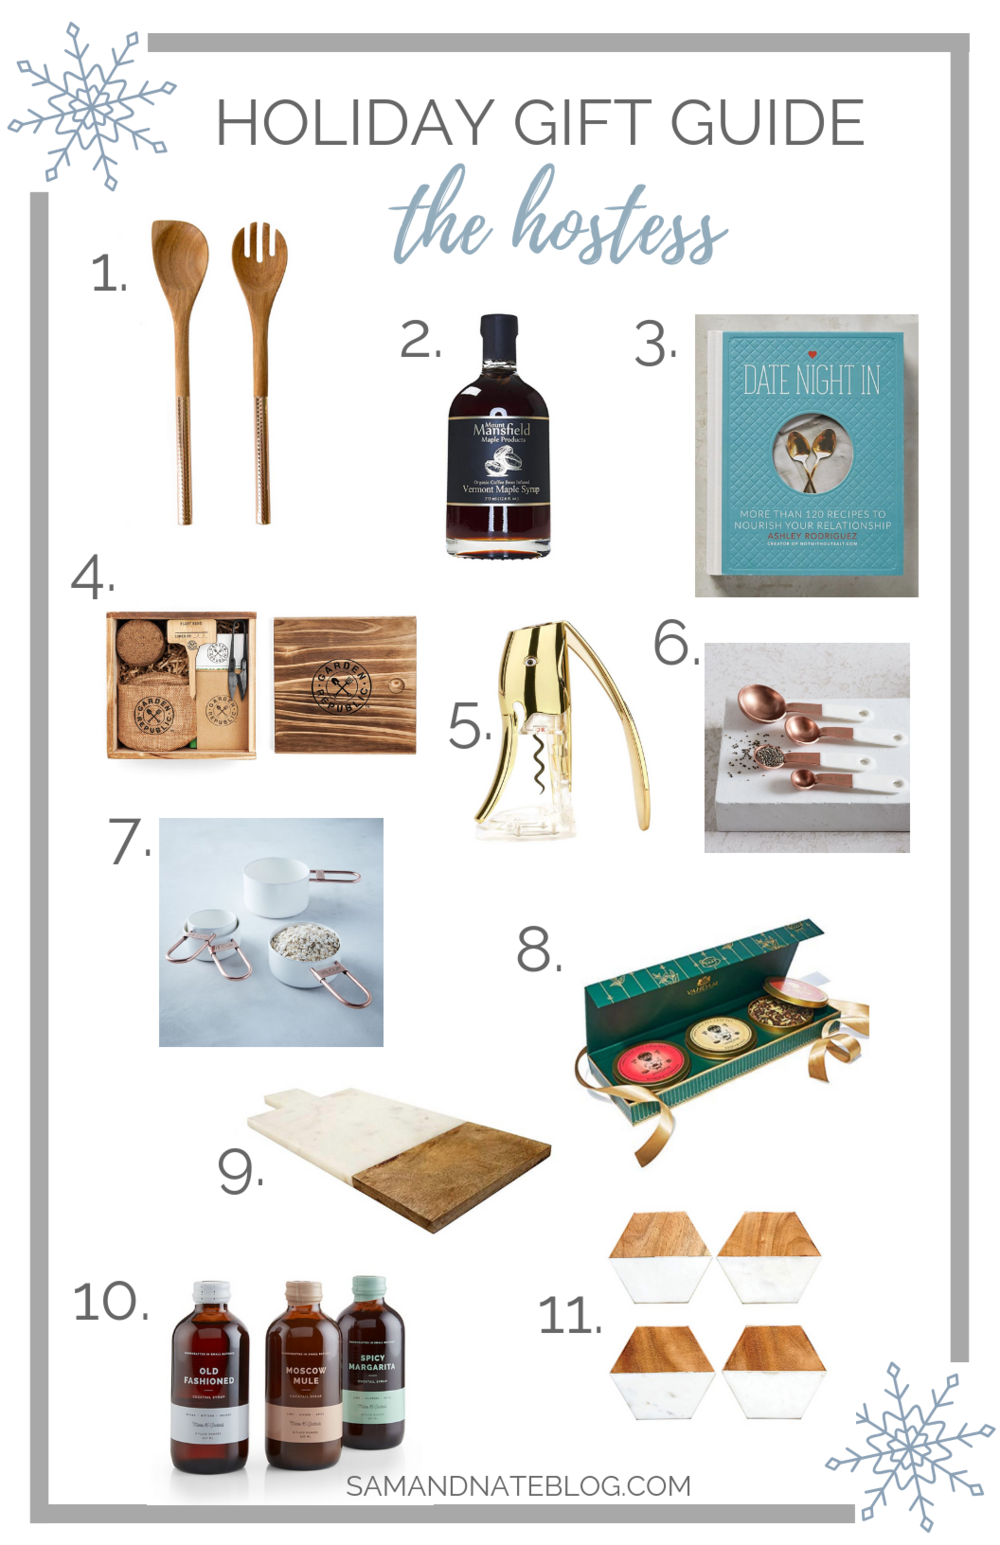 Holiday-gift-guide-for-the-hostess.png